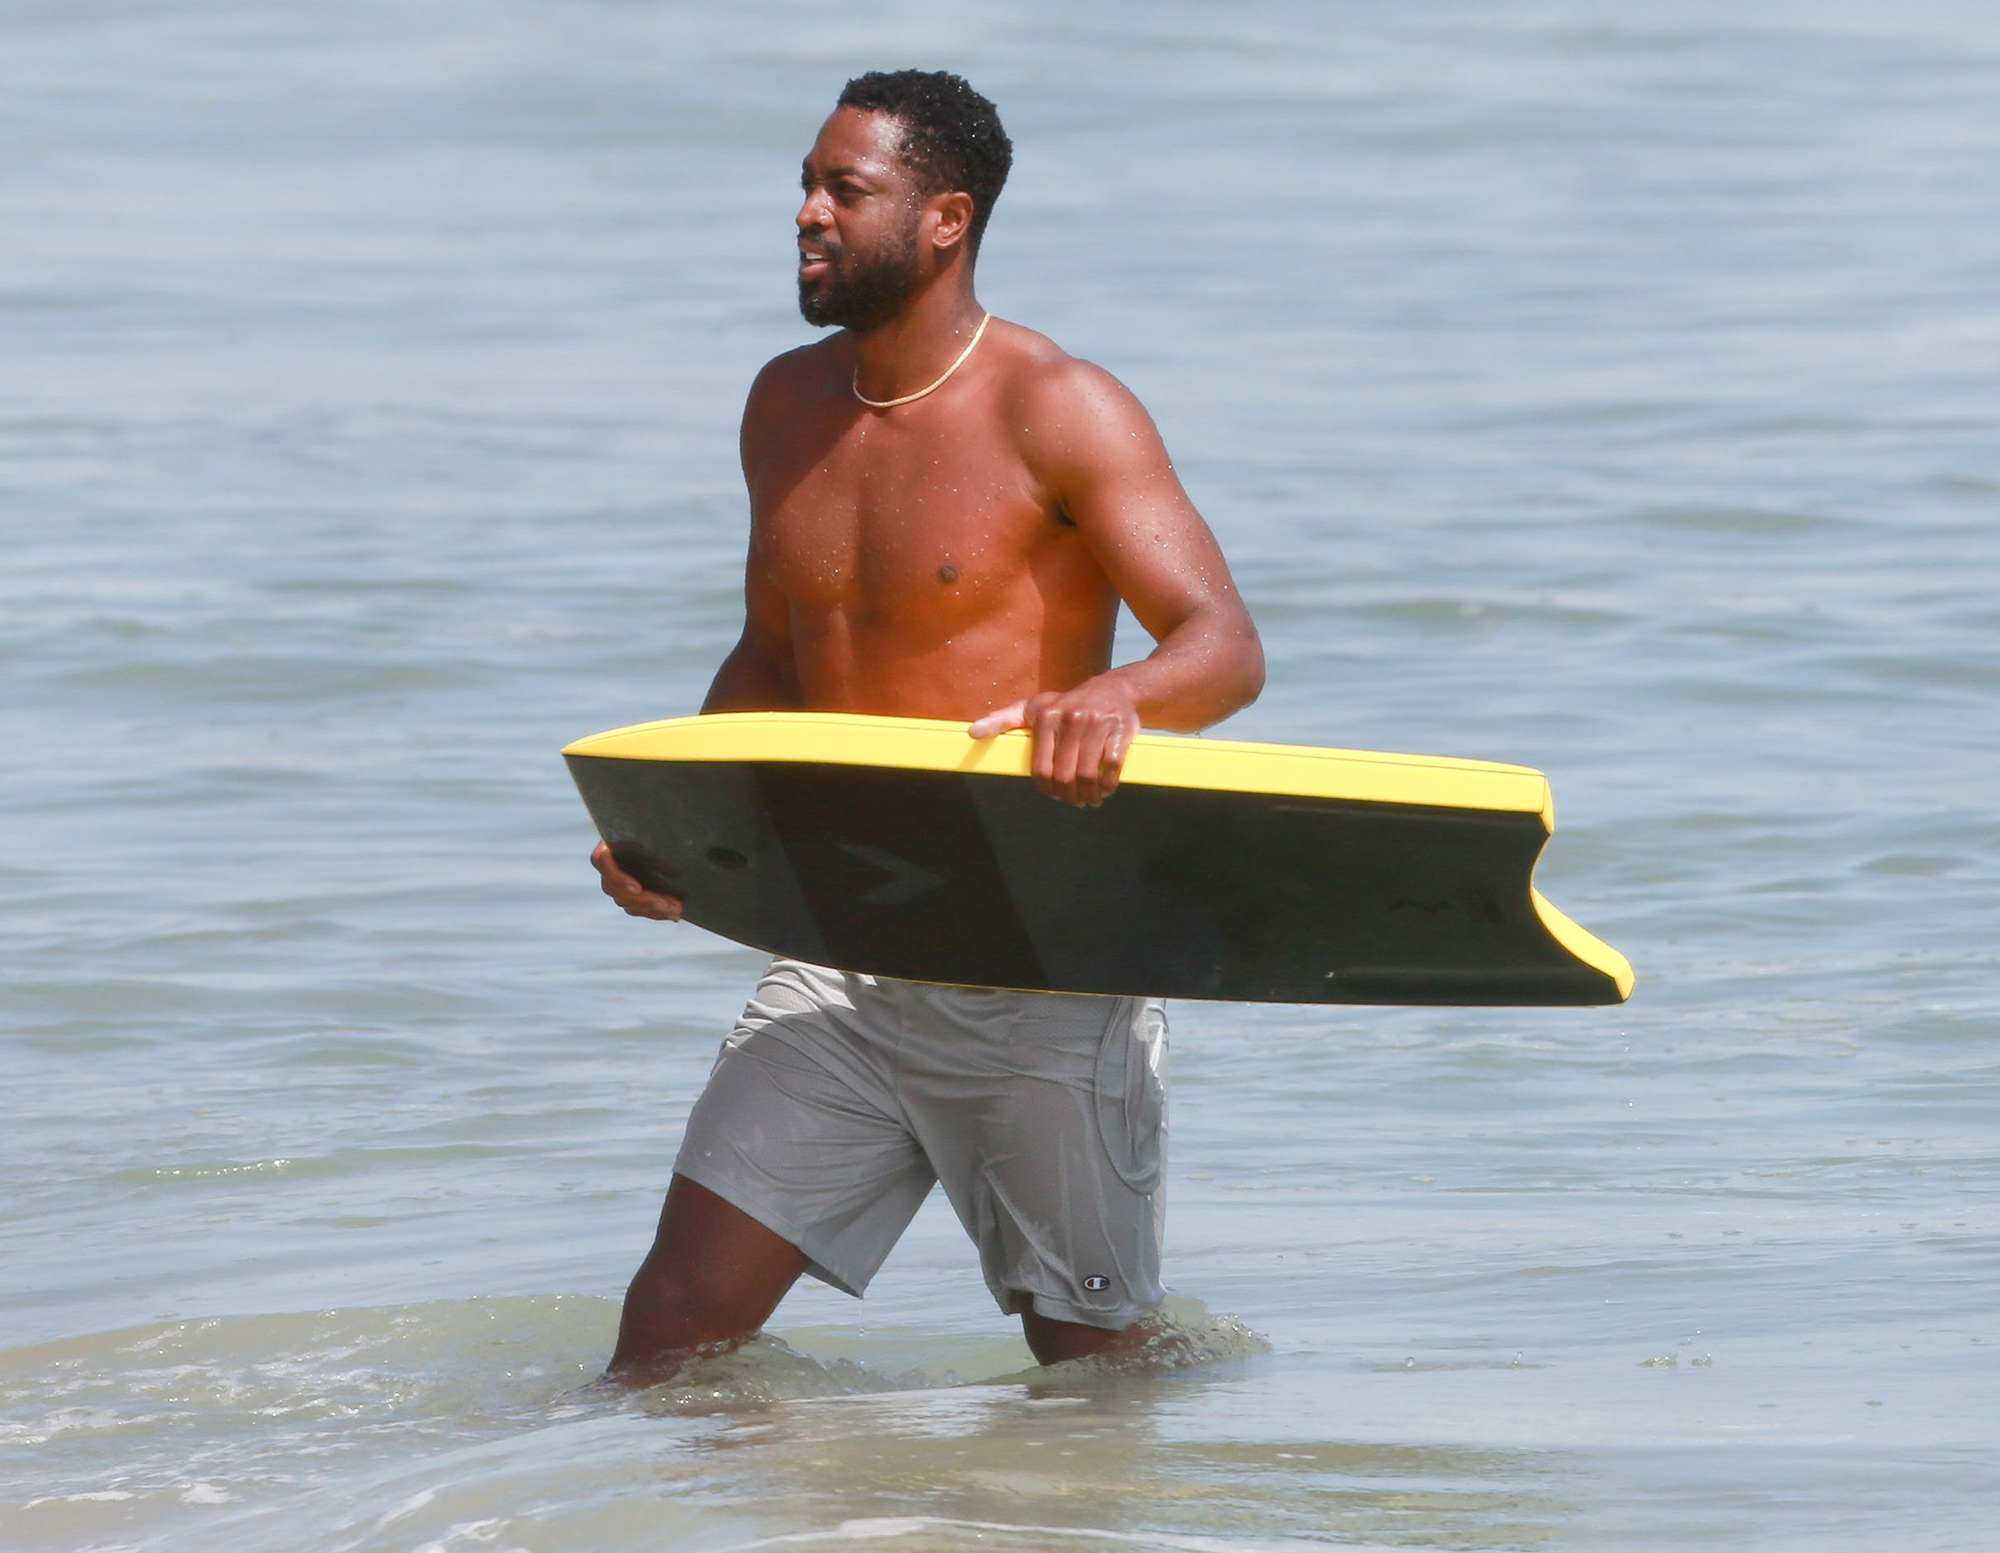 EXCLUSIVE: Chicago Bulls guard Dwyane Wade hits the waves with a friend in Malibu